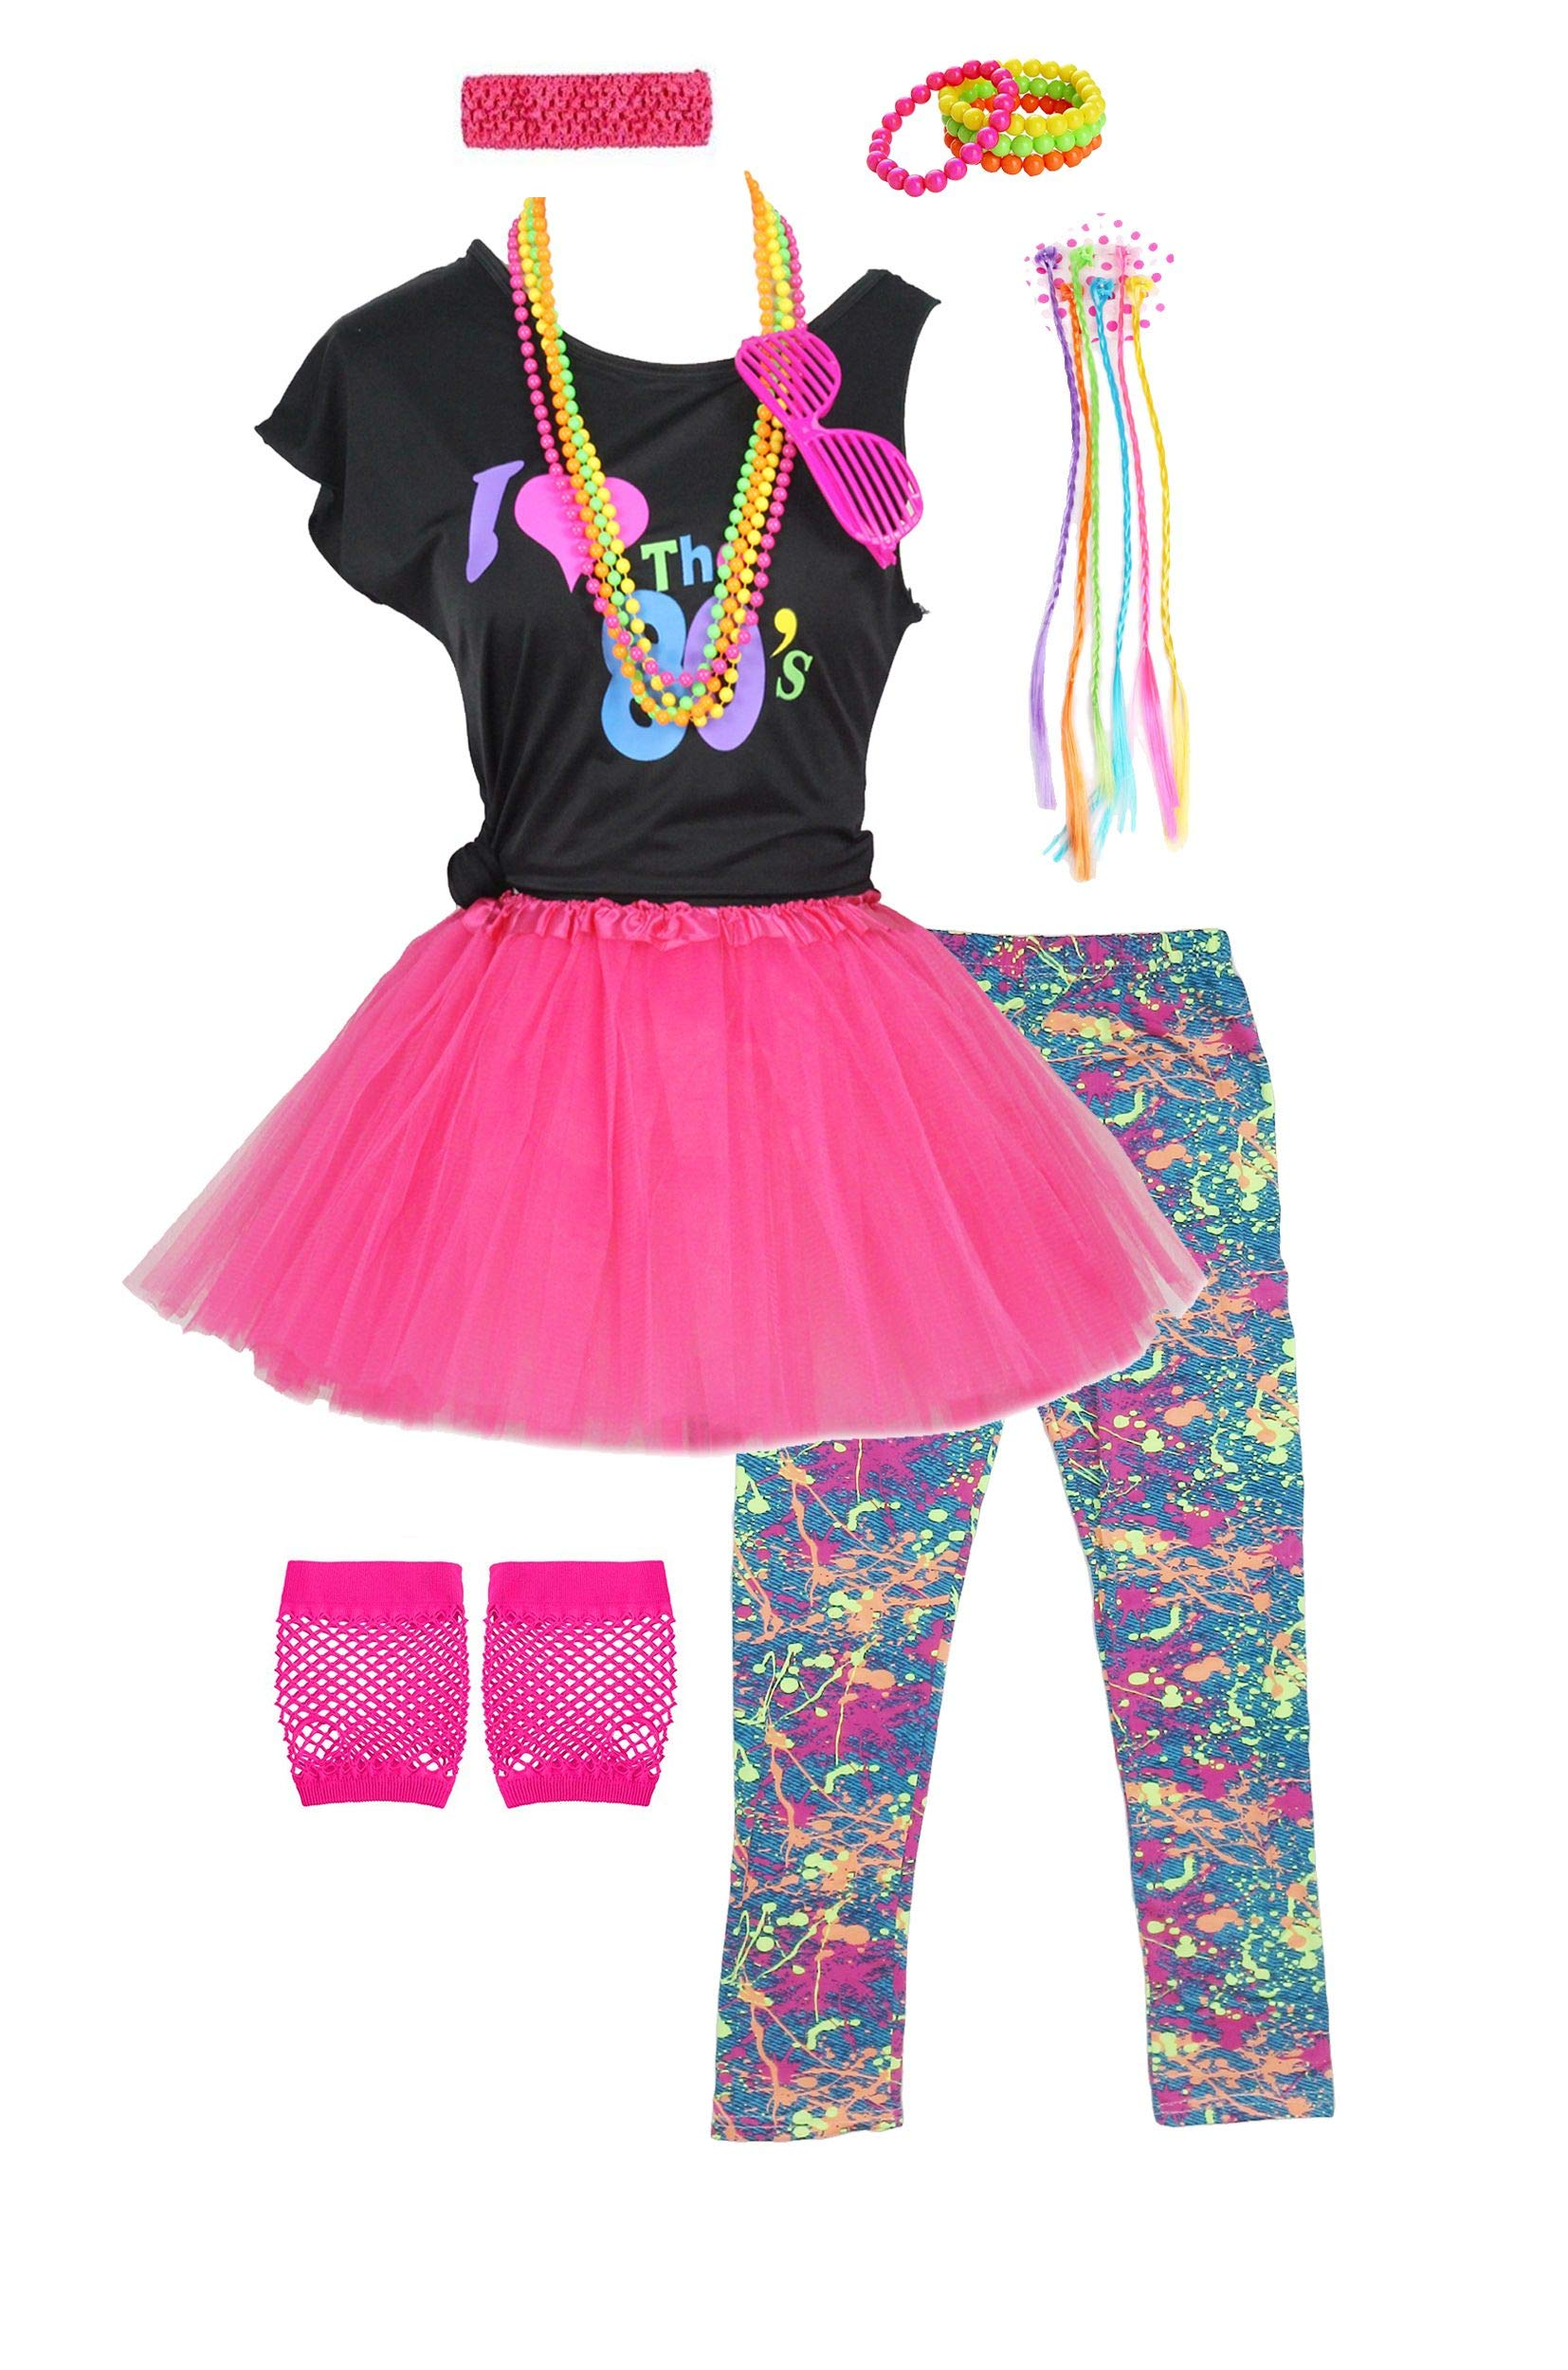 Fashion by Janestone Girls 80s T-Shirt Costume Outfit Accessories Headwear Skirt Leggings Gloves (14/16, Hot Pink) by Fashion by Janestone